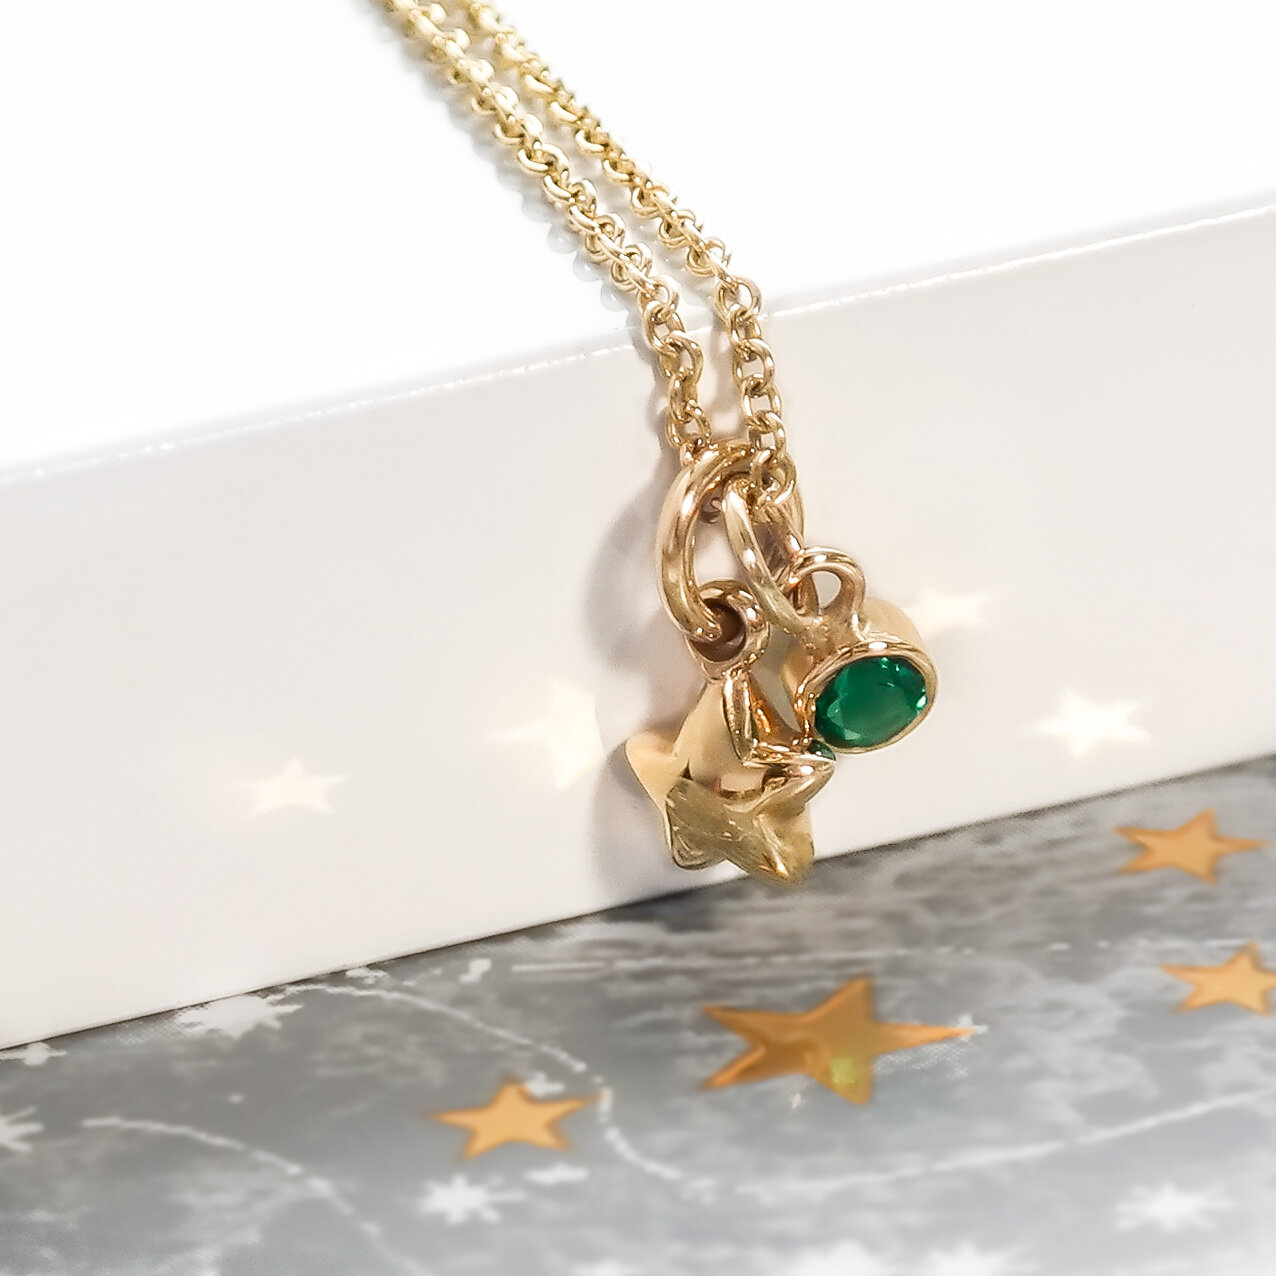 Eco-18-gold-solid-fat-star-emerald-necklace.jpg